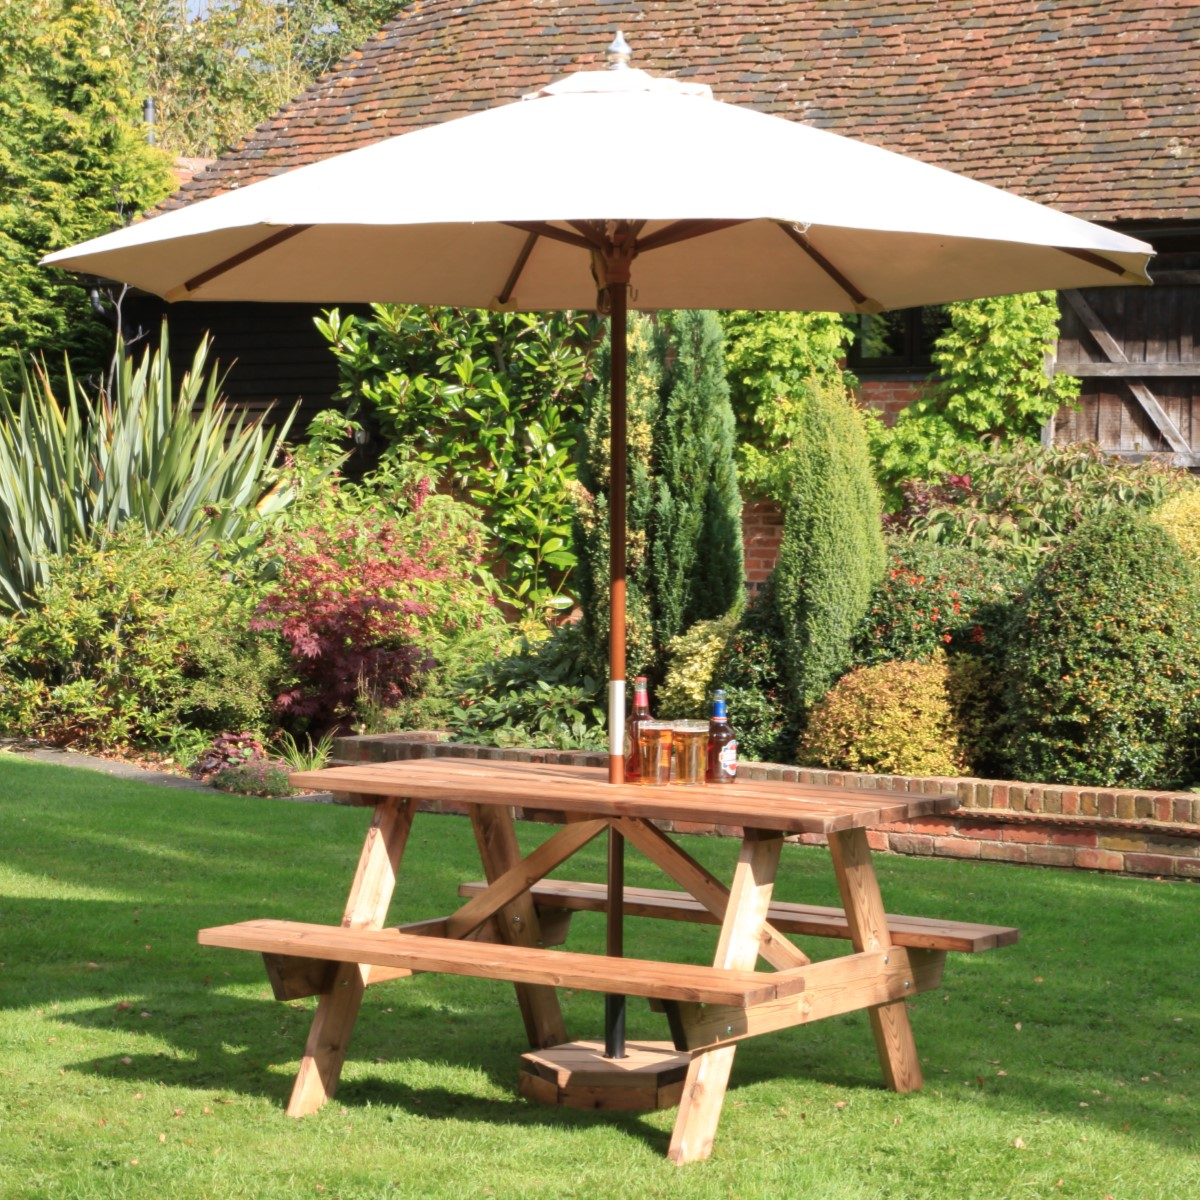 A wooden 6 seater A Frame picnic table on grass with a cream parasol